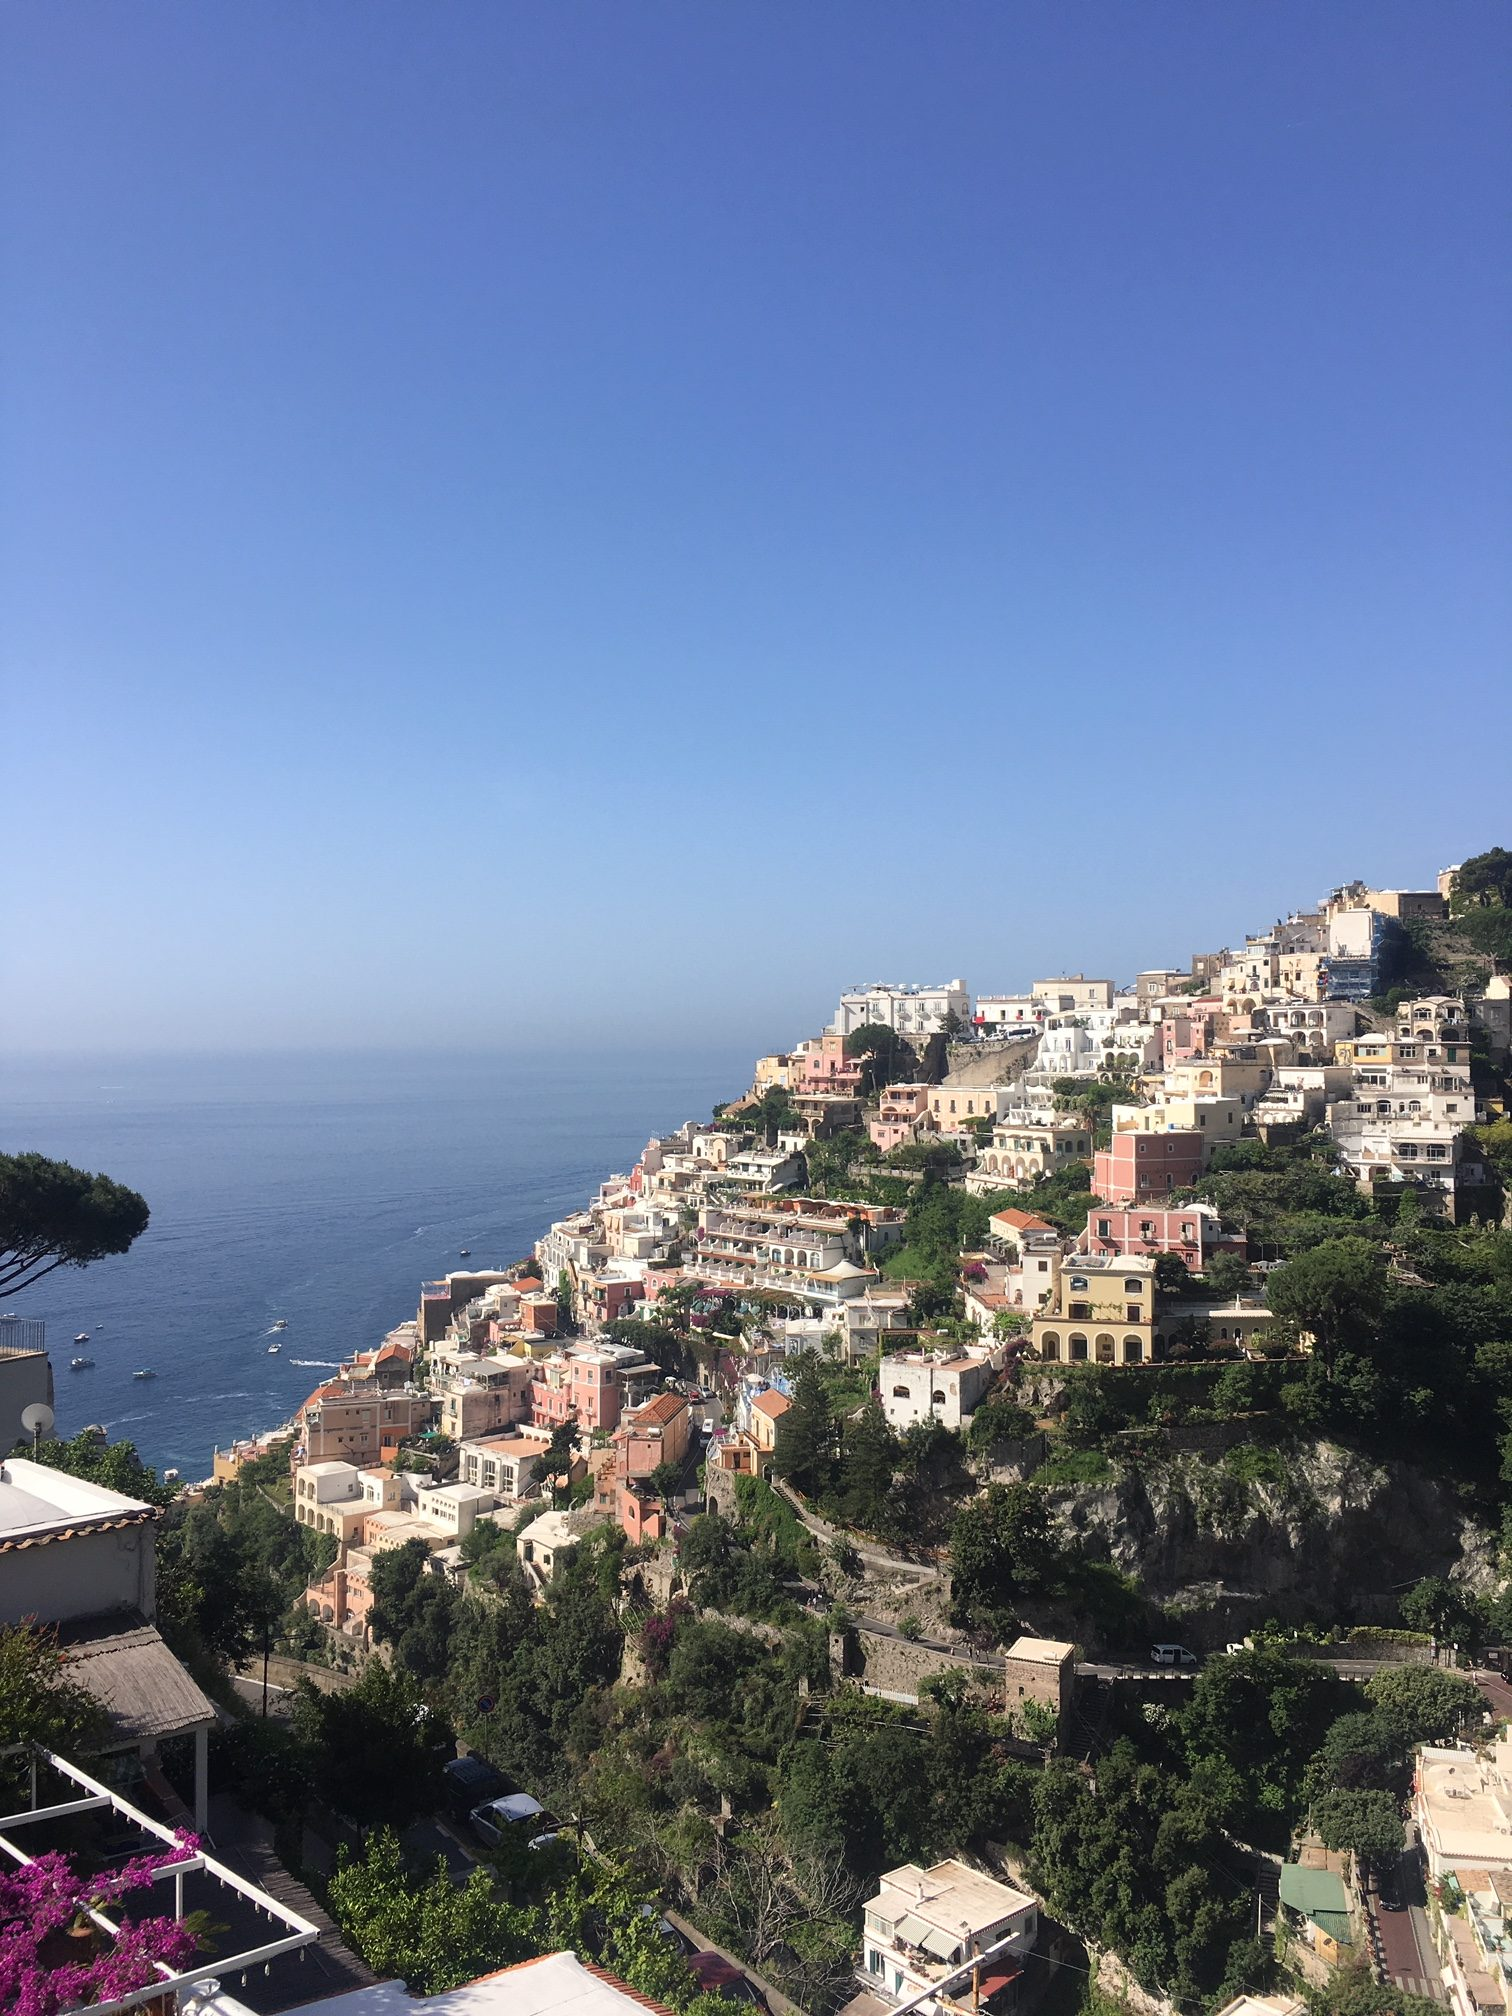 Villa Mary, Positano - BenchBags